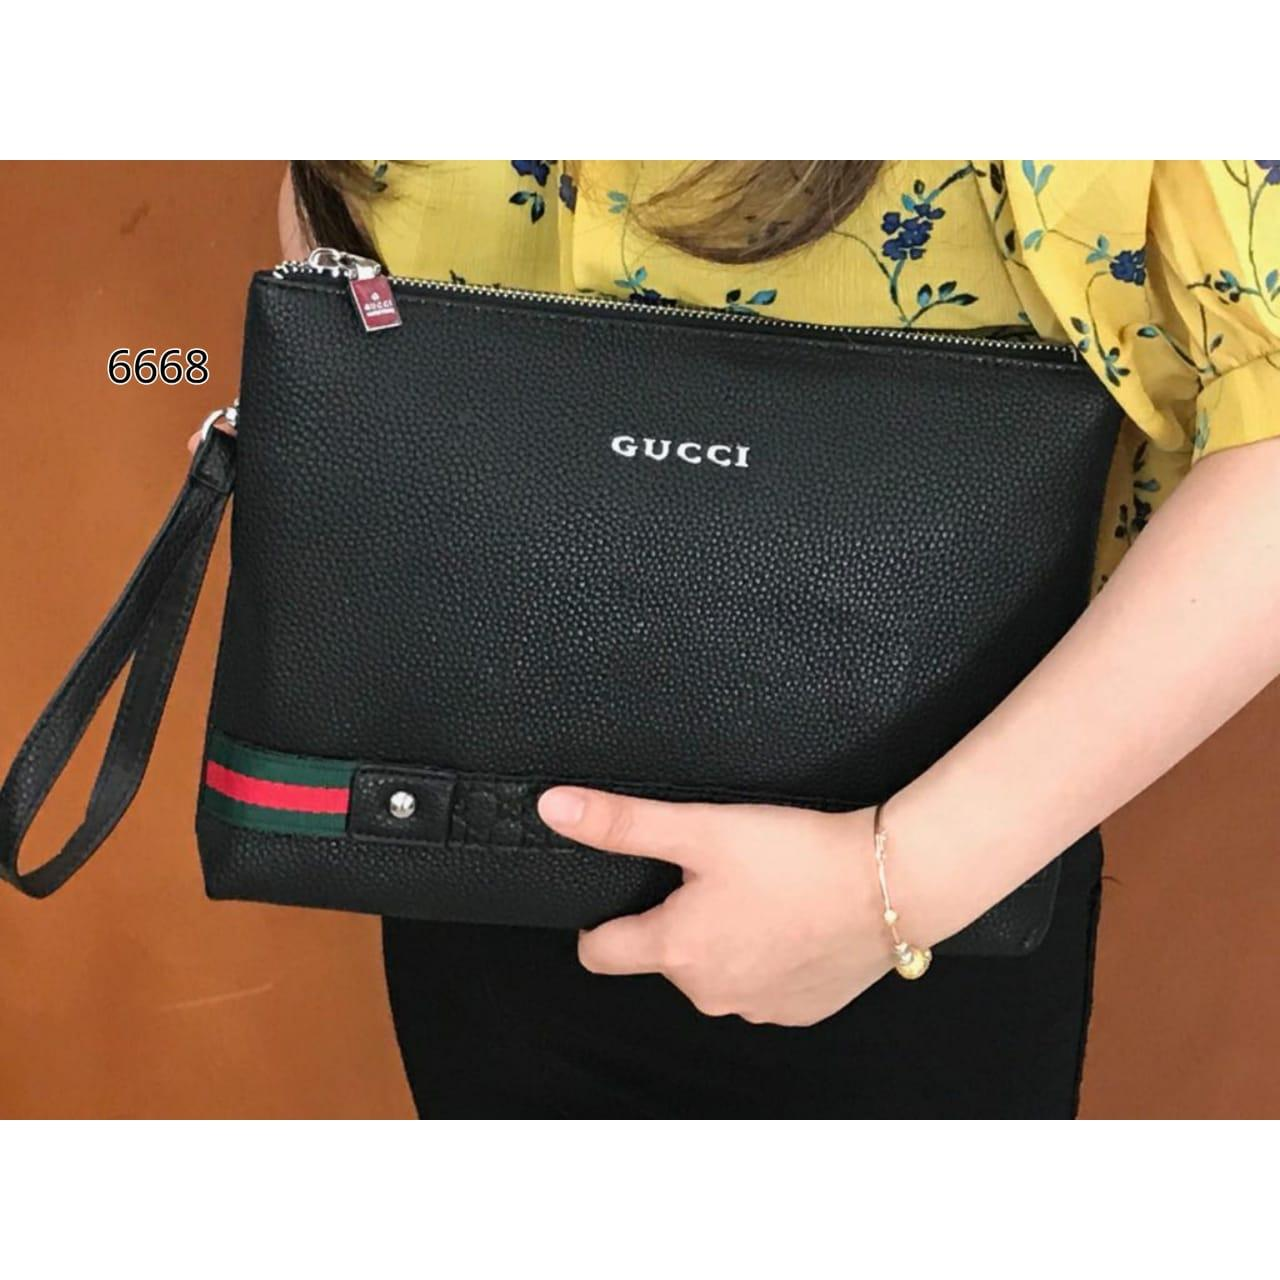 Clutch Gucci Big Size 6668 Tas Fashion Wanita a5e654fdc0